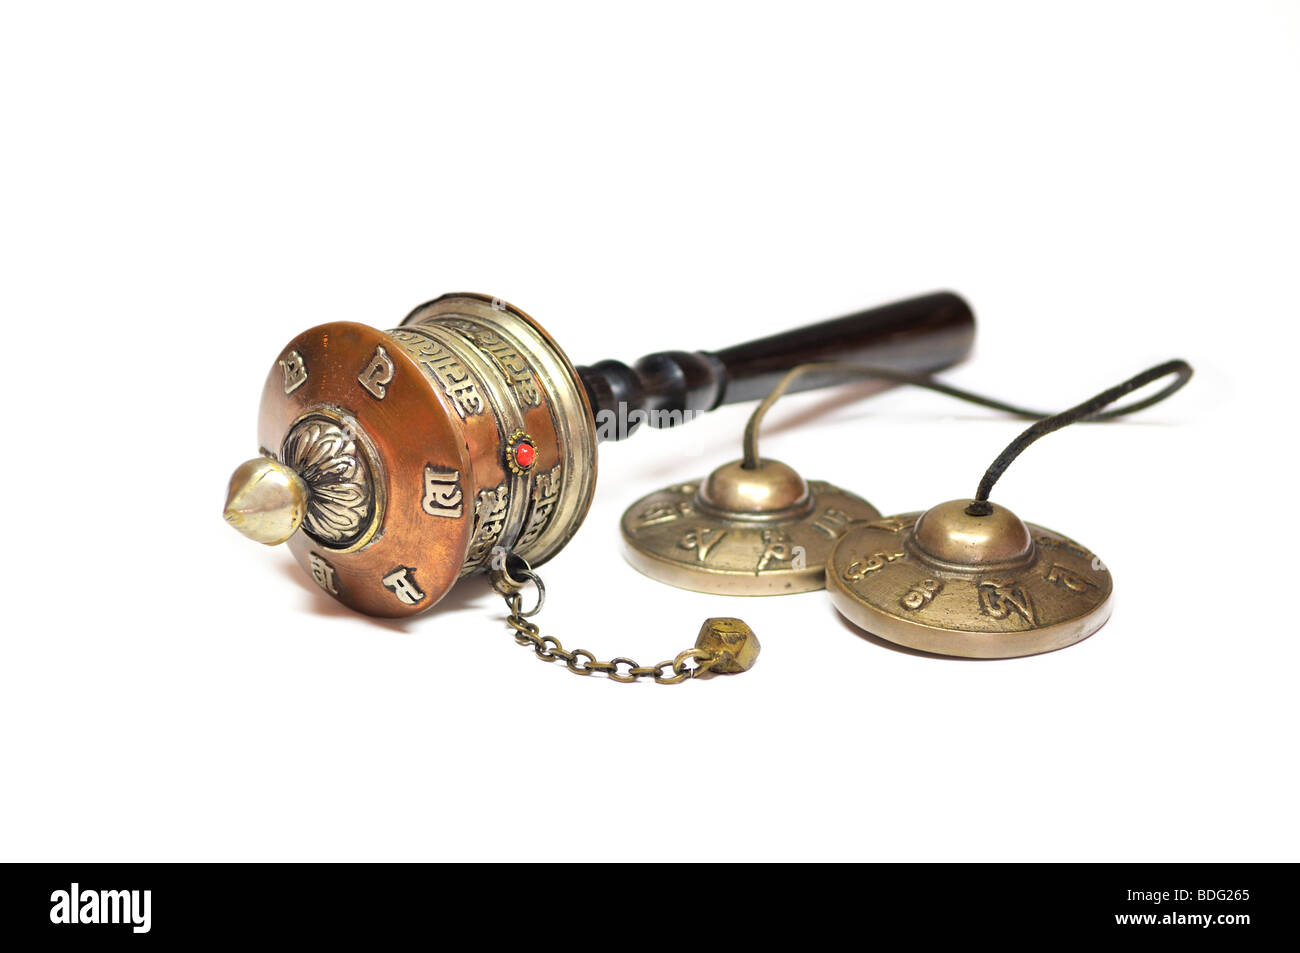 Tibetan brass cymbals and a prayer wheel - Stock Image